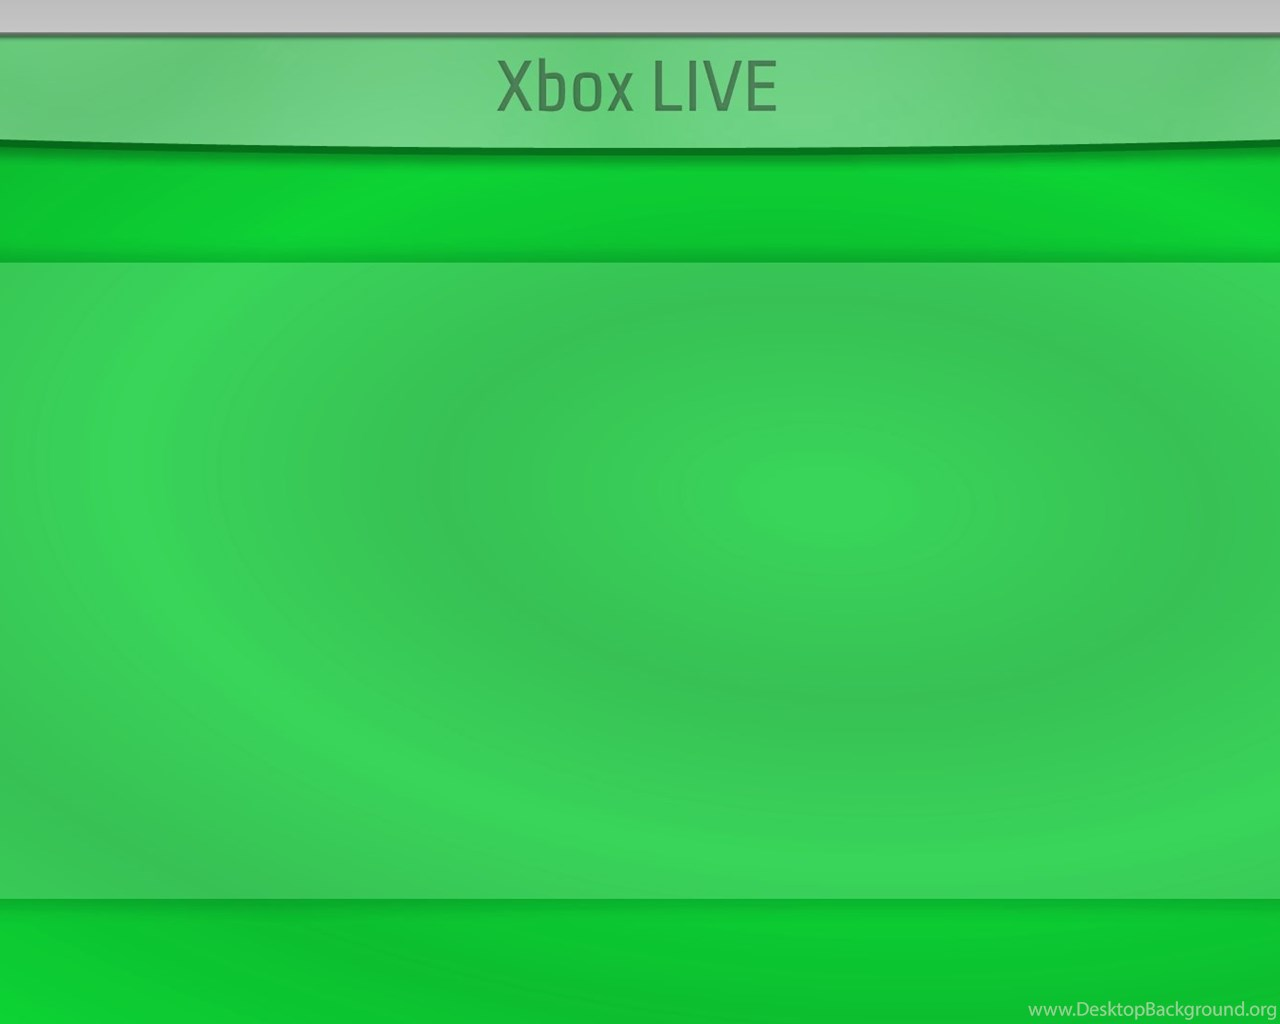 Live Wallpaper For Iphone X Xbox 360 Quot Blades Quot Dashboard Inspired Theme Xboxthemes